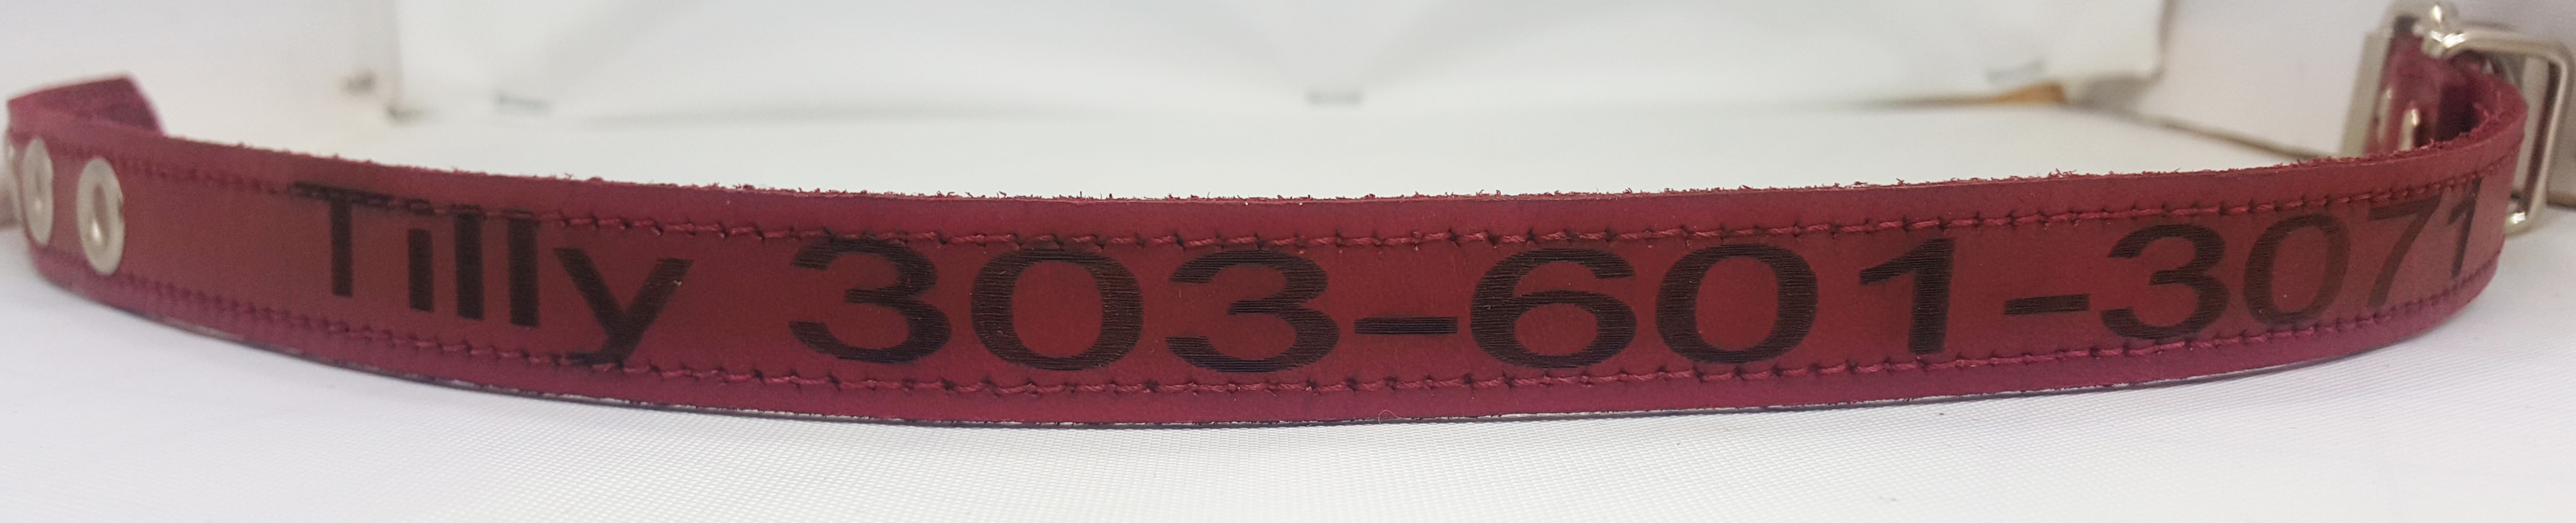 Small Engraved Leather Collars